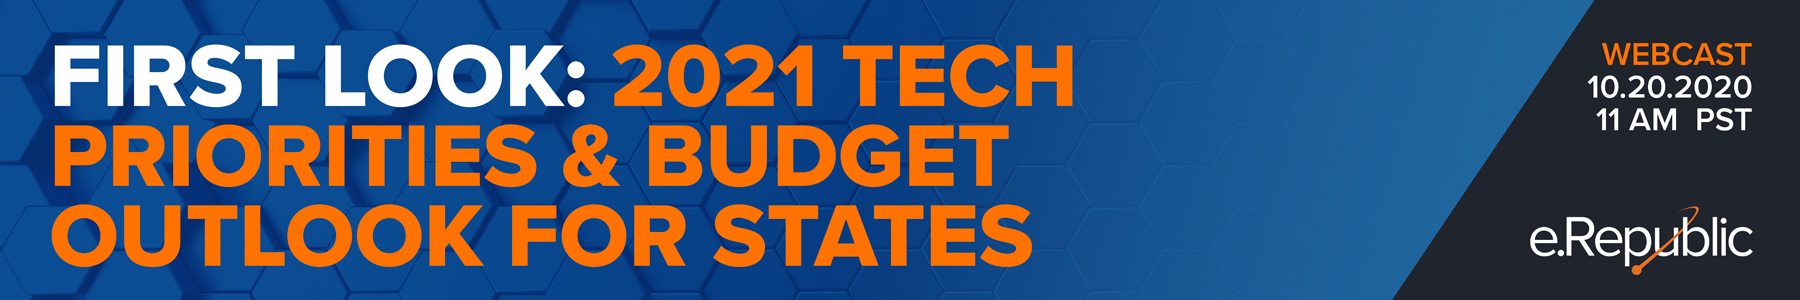 First Look: 2021 Tech Priorities & Budget Outlook for States